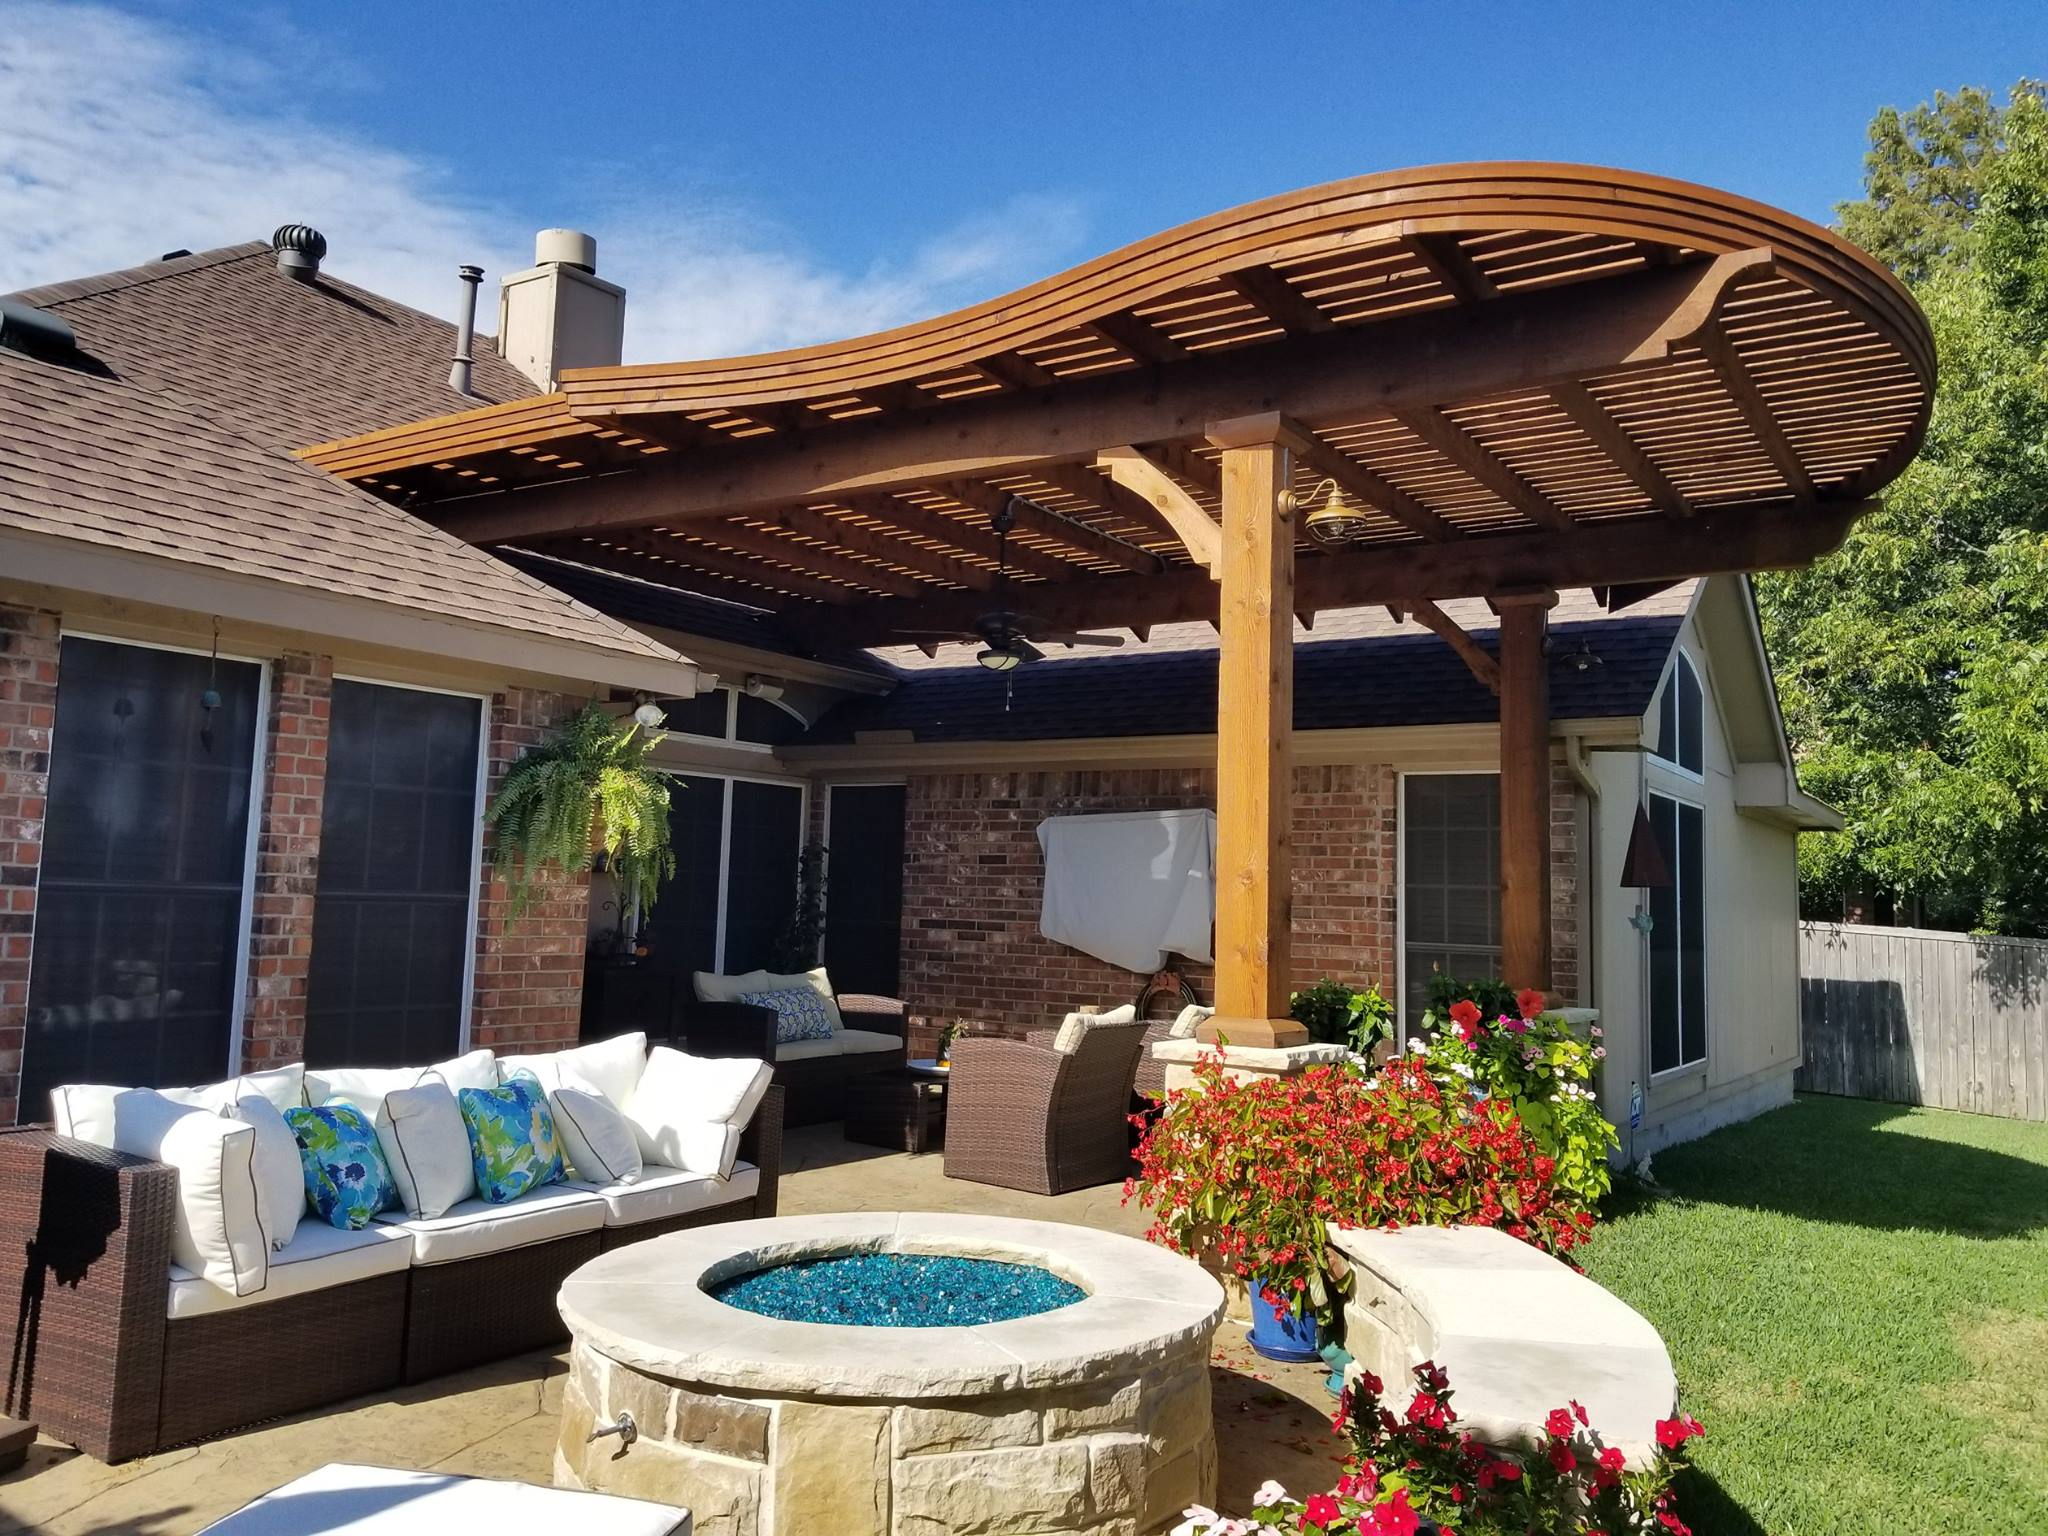 Sachse, Texas Patio Covers, Arbors & Outdoor Kitchens ... on Backyard Patio Cover Ideas  id=33068